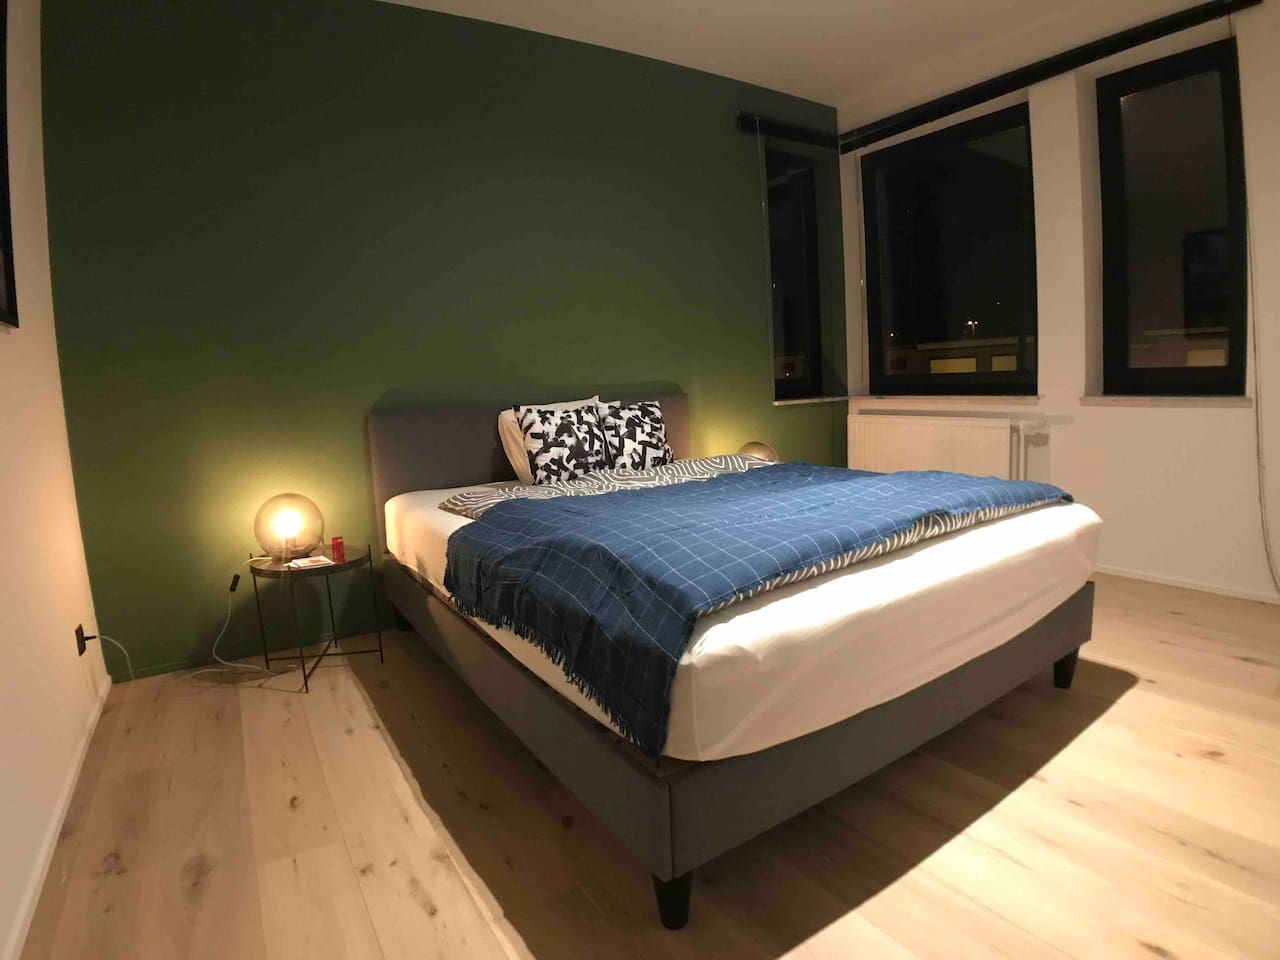 This is your room where you can enjoy staying in my place. It is furnished with a queen size bed, two small tables, two lamps, big wardrobe and couple of souvenirs. It is oriented toward the east with big windows where the sun warms it every morning.